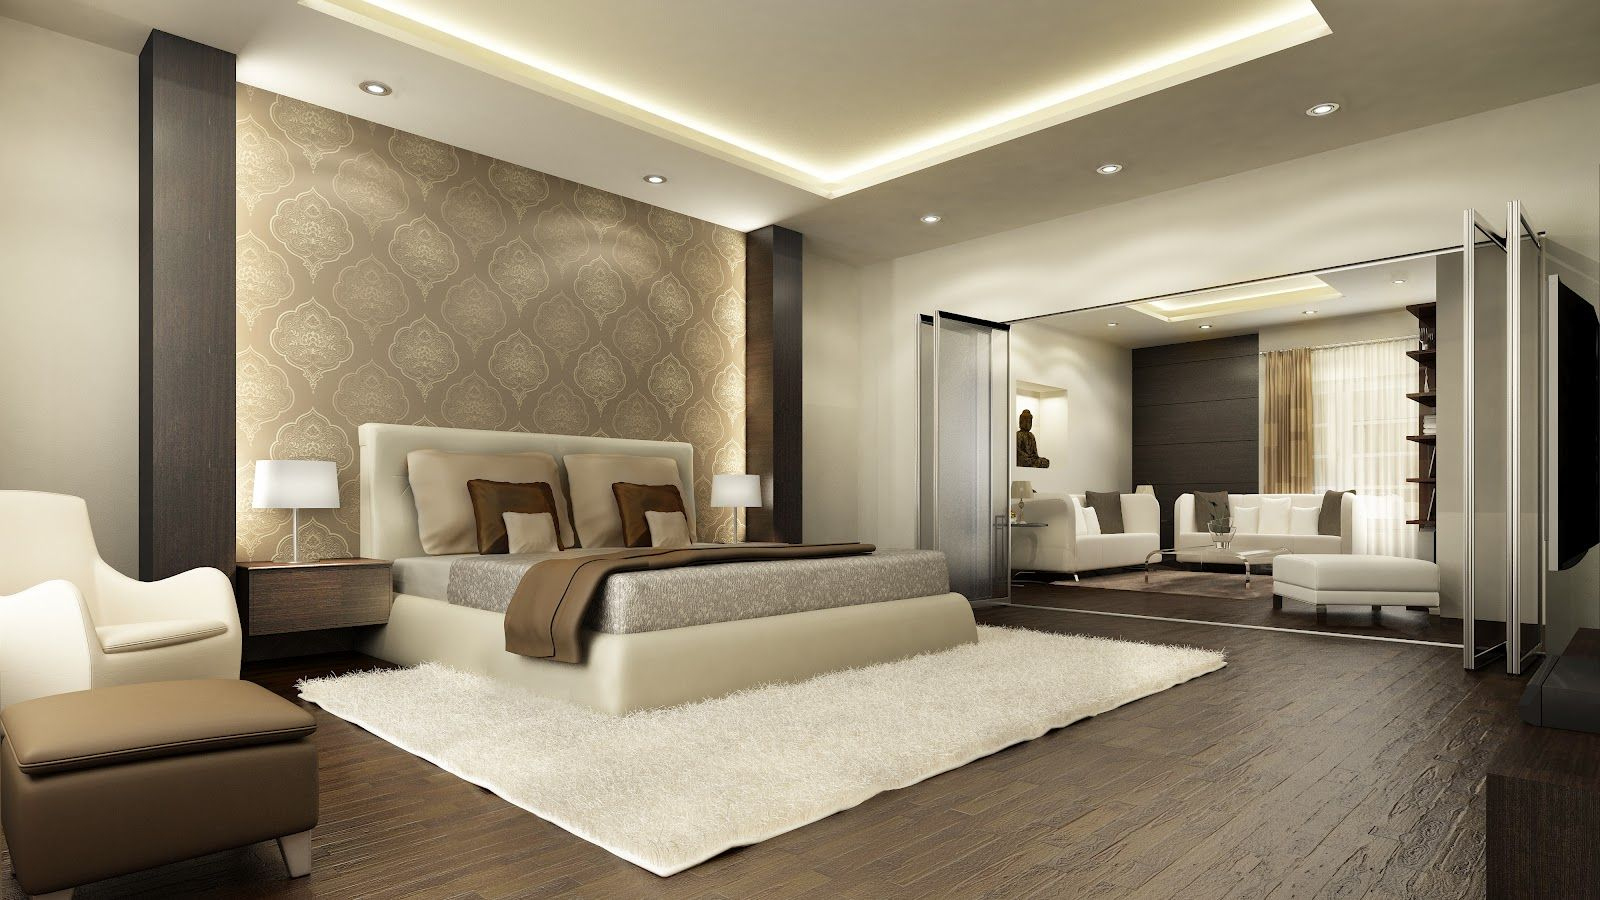 Interior Design Bedroom Ideas On A Budget Home Decore Style for Modern Design For Bedroom